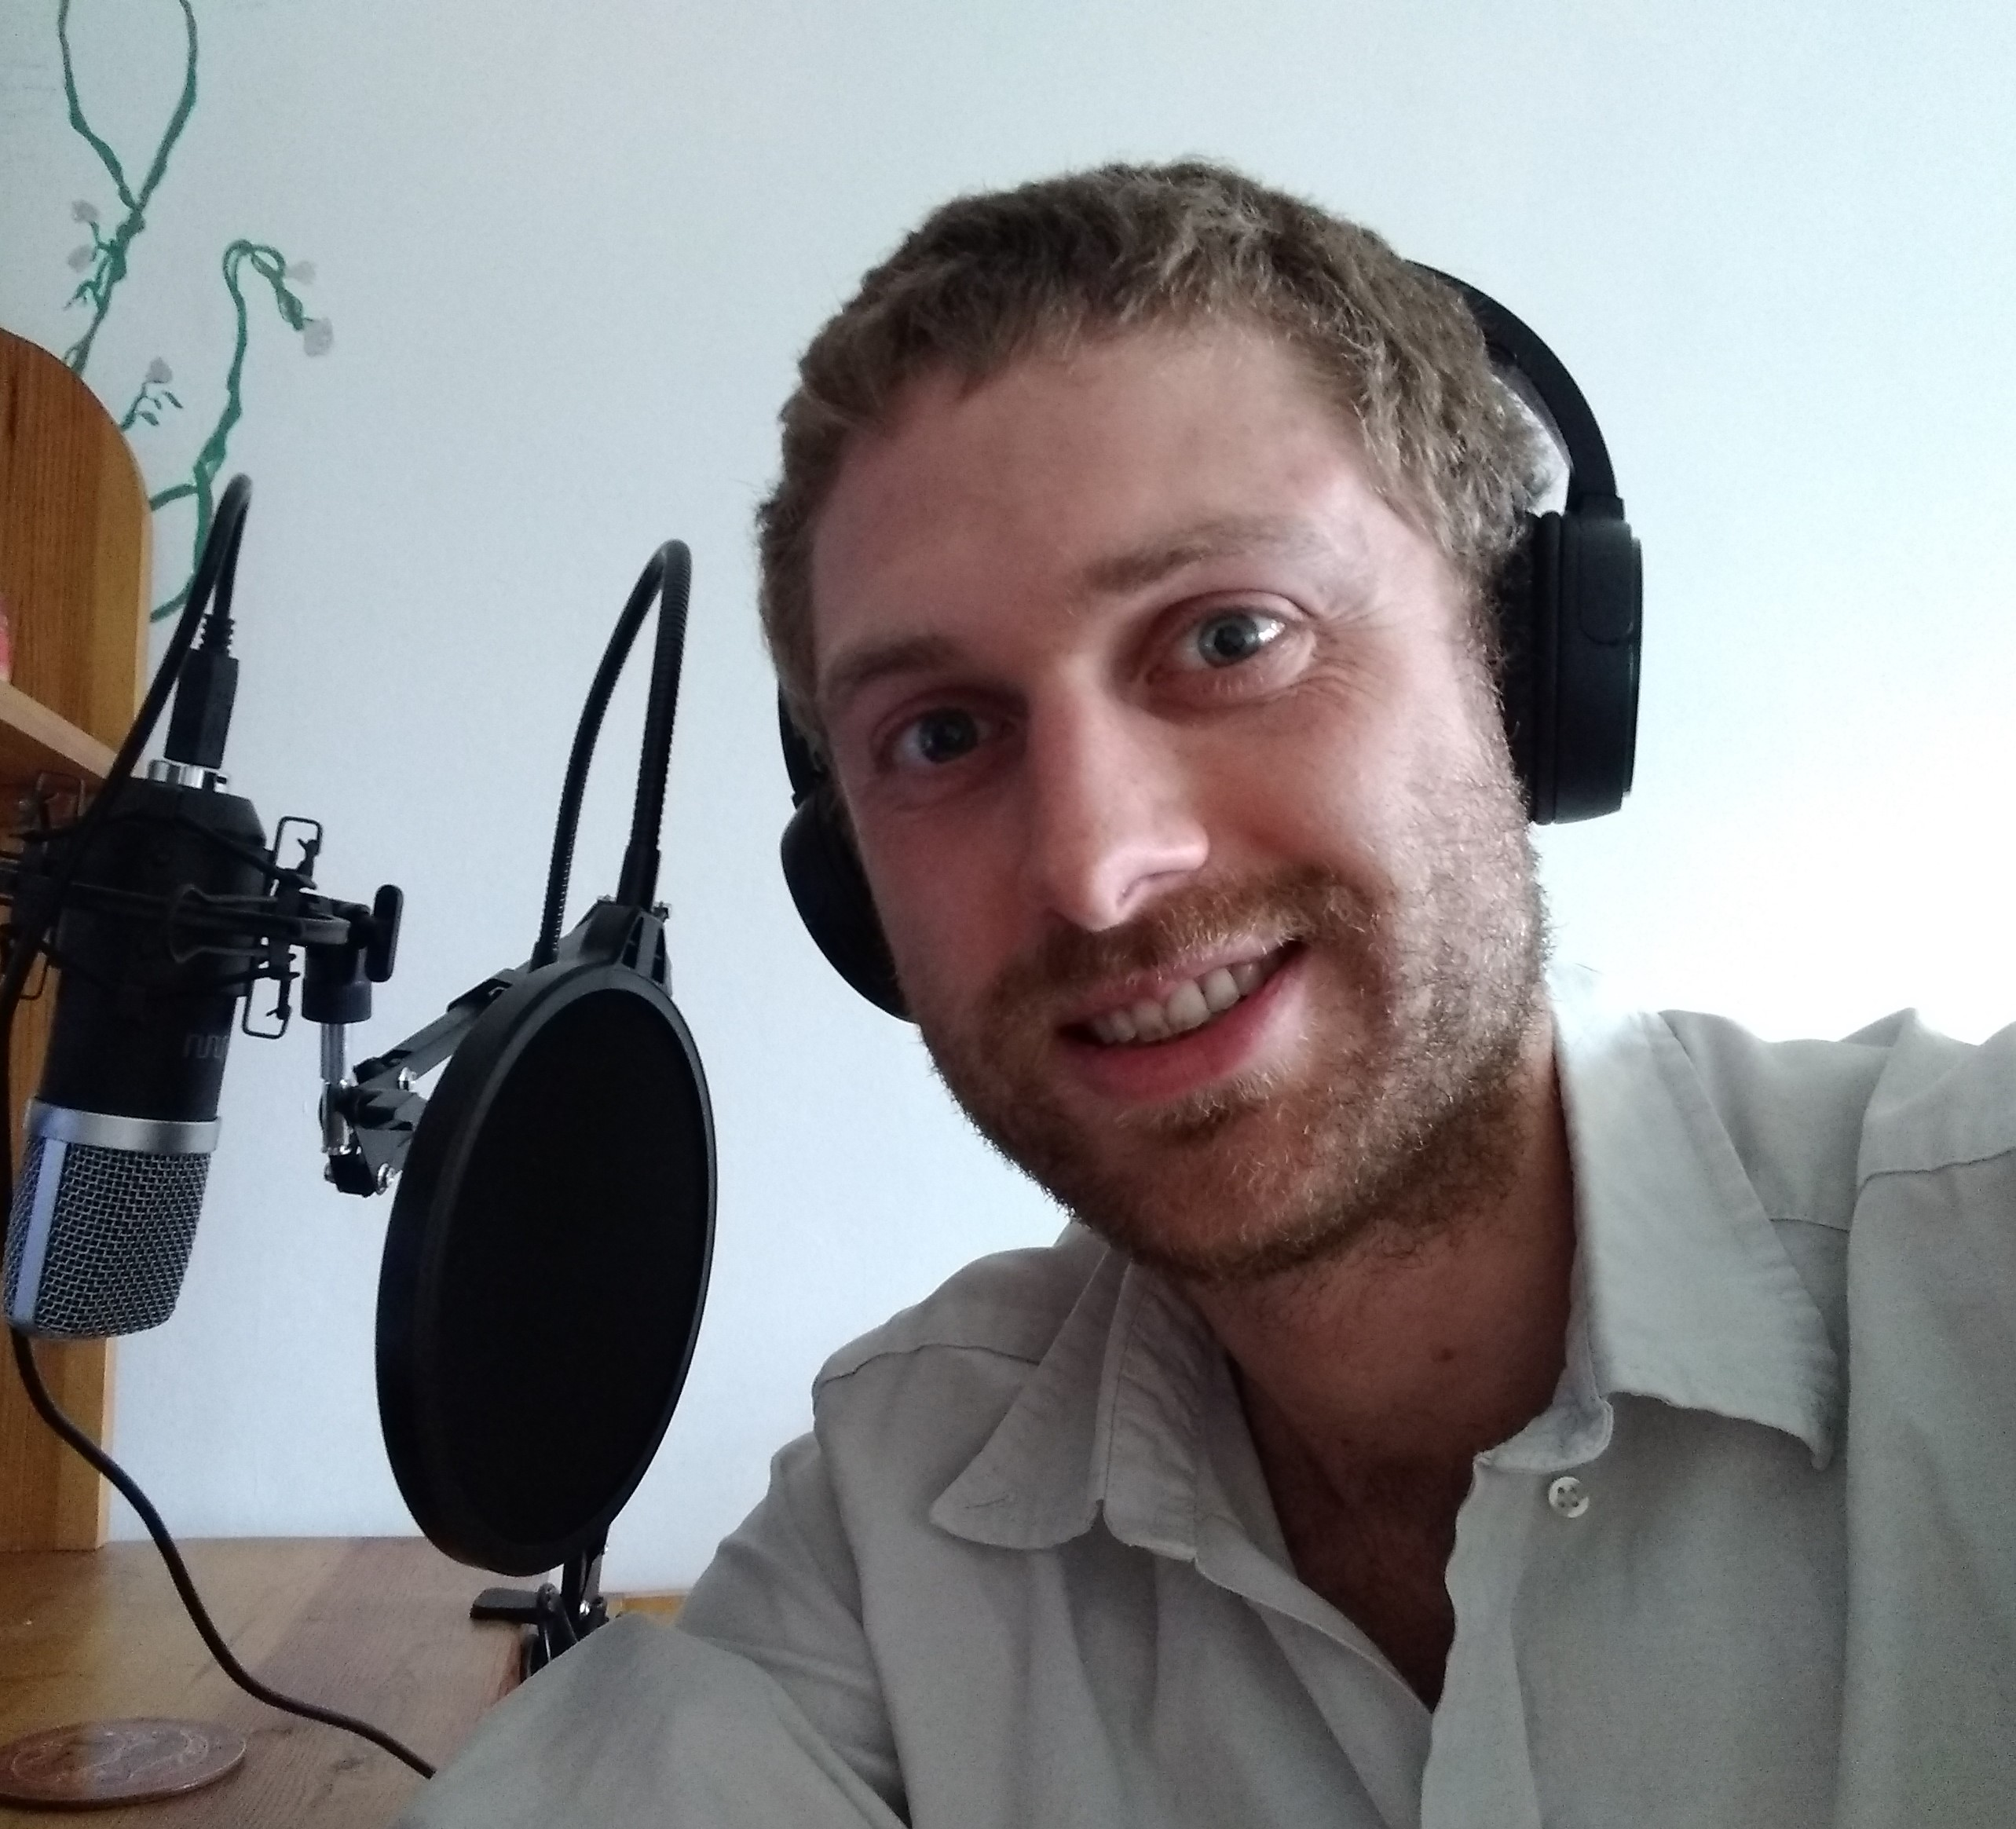 Stephen Devincenzi in Interview for My Fluent Podcast